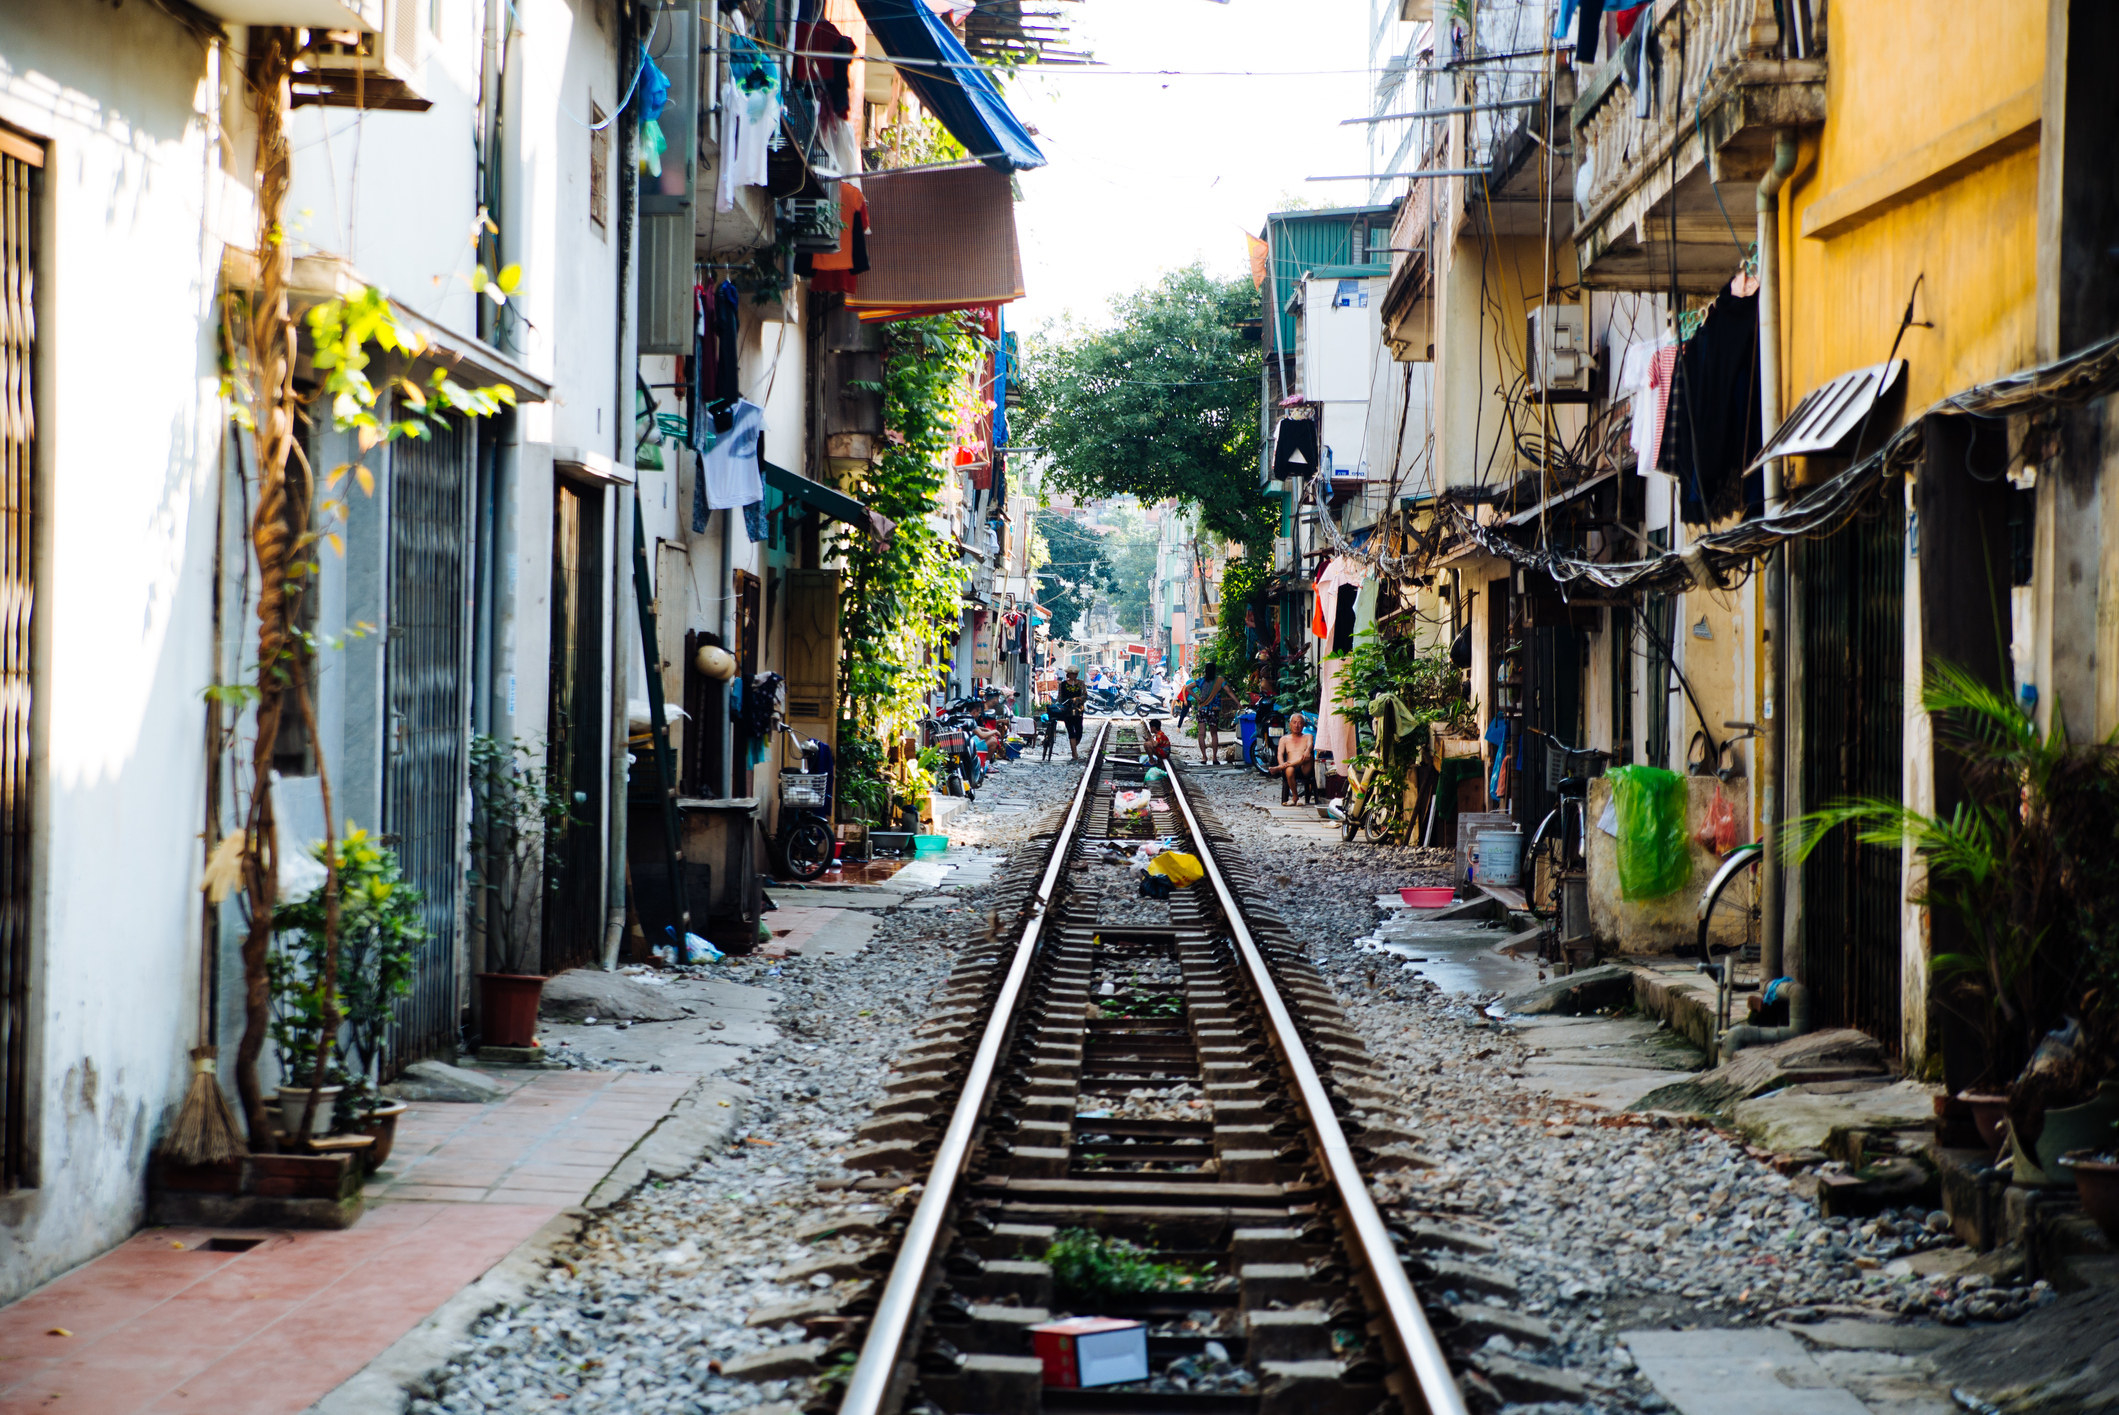 A street with a railroad in Asia.